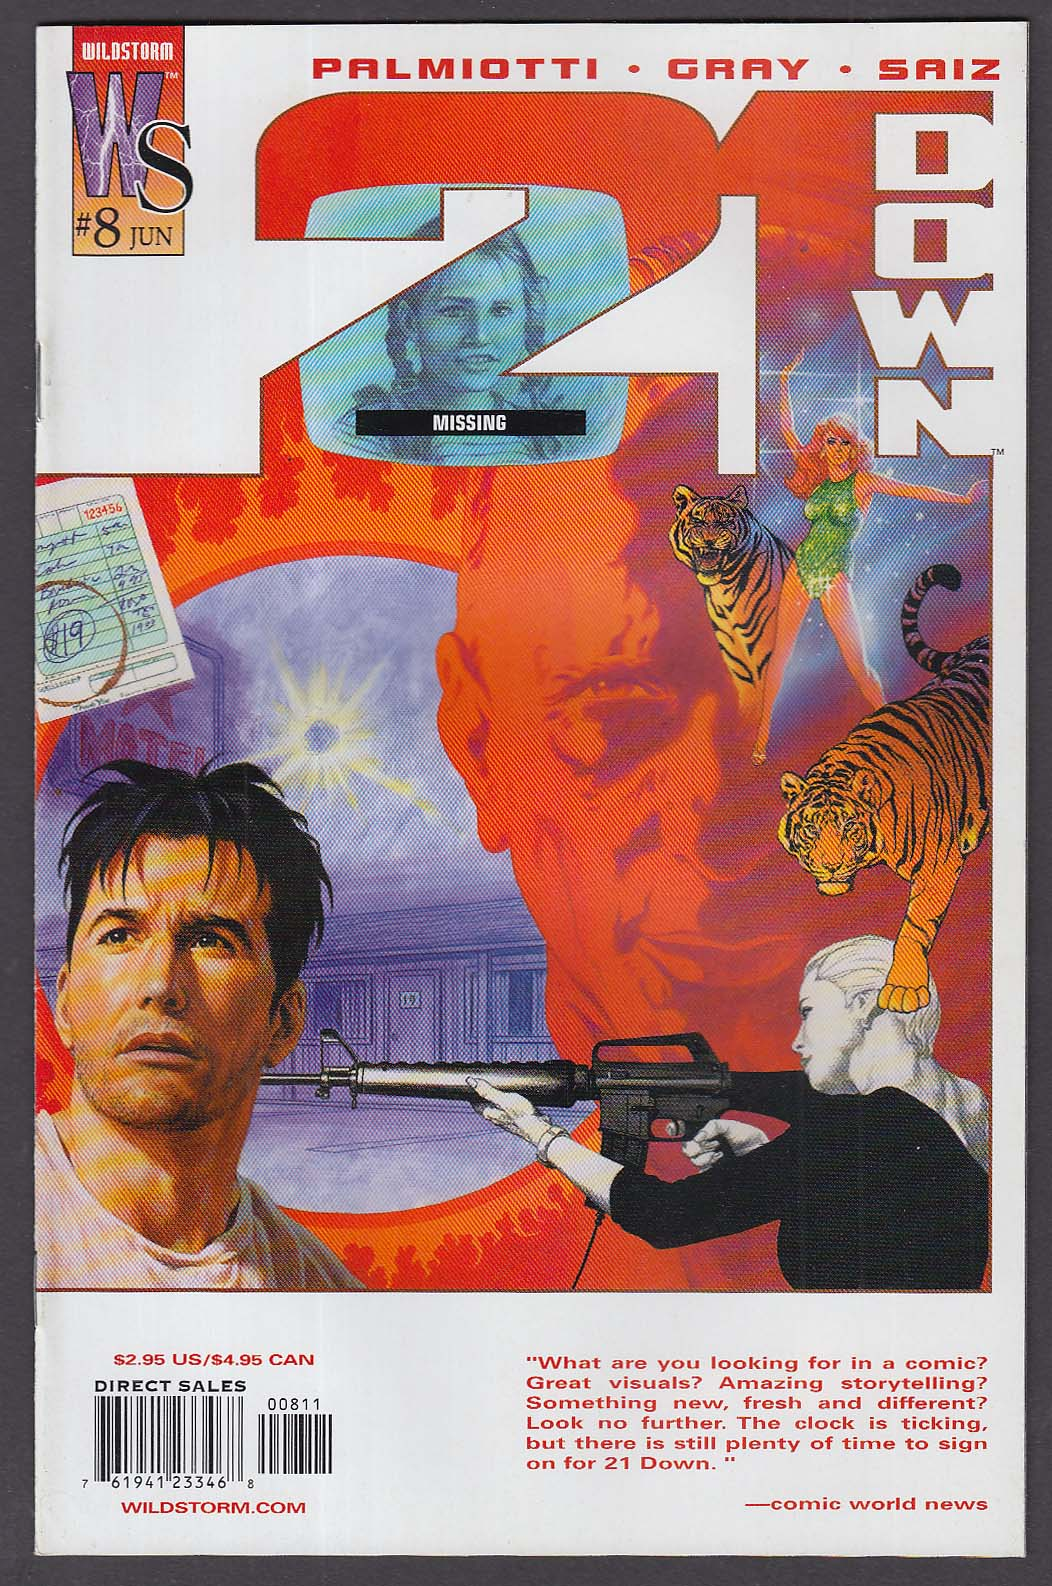 Image for 21 DOWN #8 WildStorm comic book 6 2003